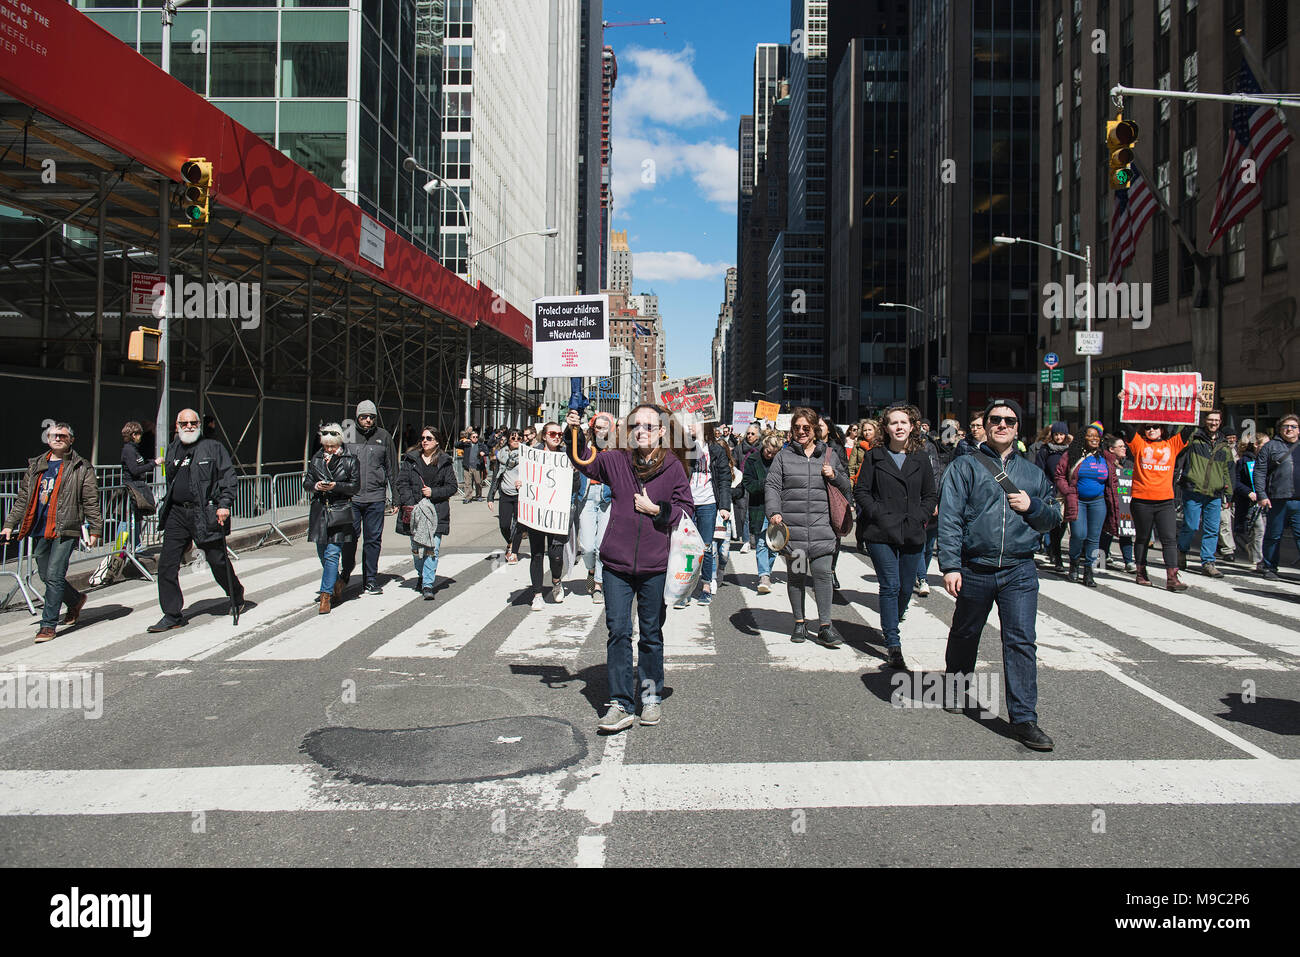 New York City, USA. 24th March, 2018. March for Our Lives in New York City, New York. March 24th, 2018. Credit: Beth Dixson/Alamy Live News Stock Photo